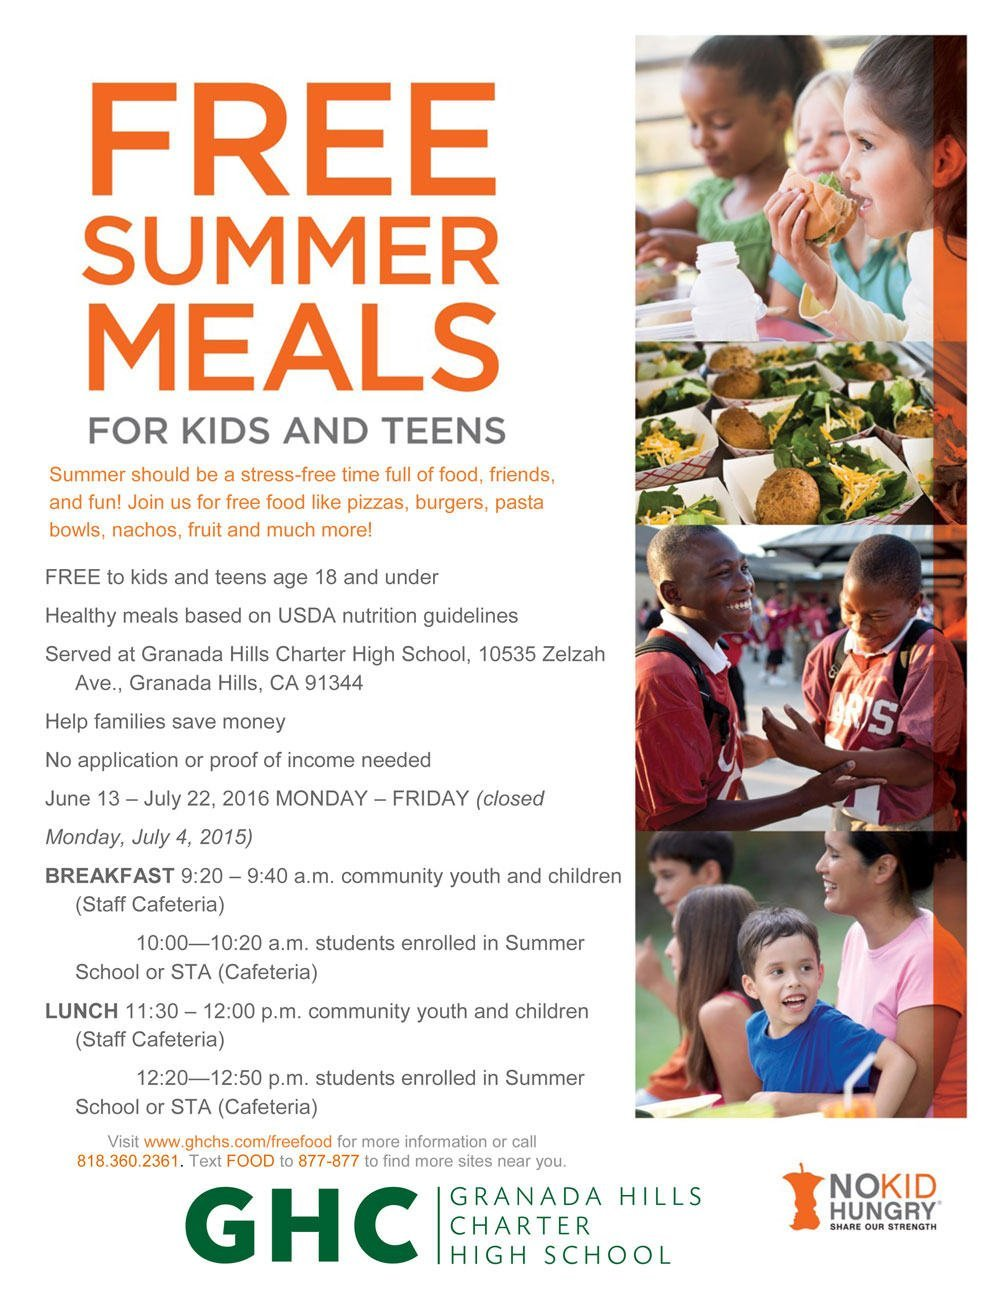 Free Summer Meals for Kids and Teens Age 18 and Under!